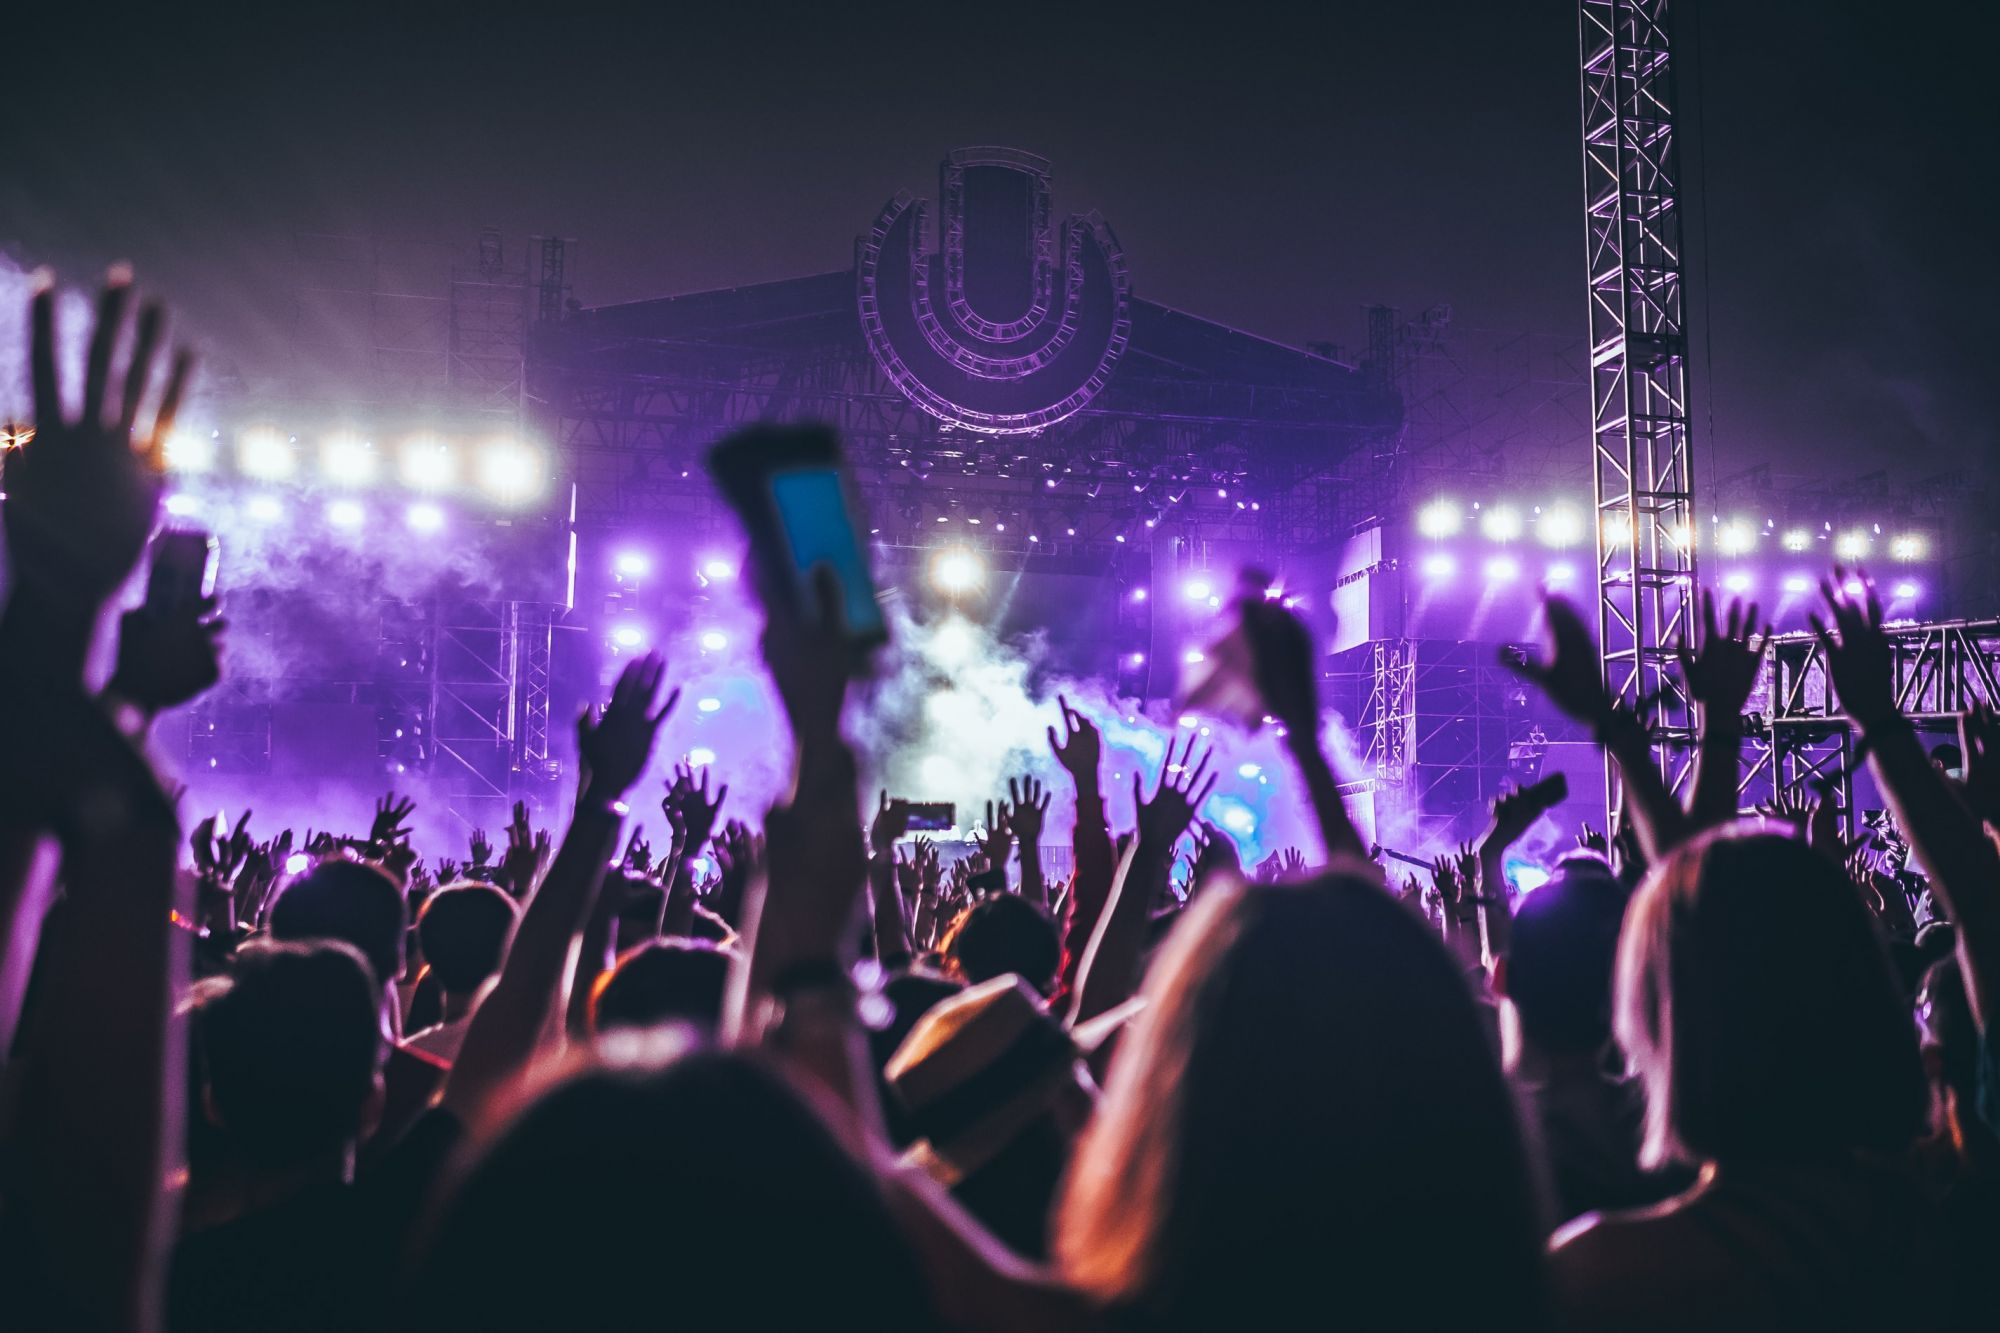 Iqbal Ameer Of Livescape Asia Weighs In On How The Internet Is Transforming Asia's Live Music Industry